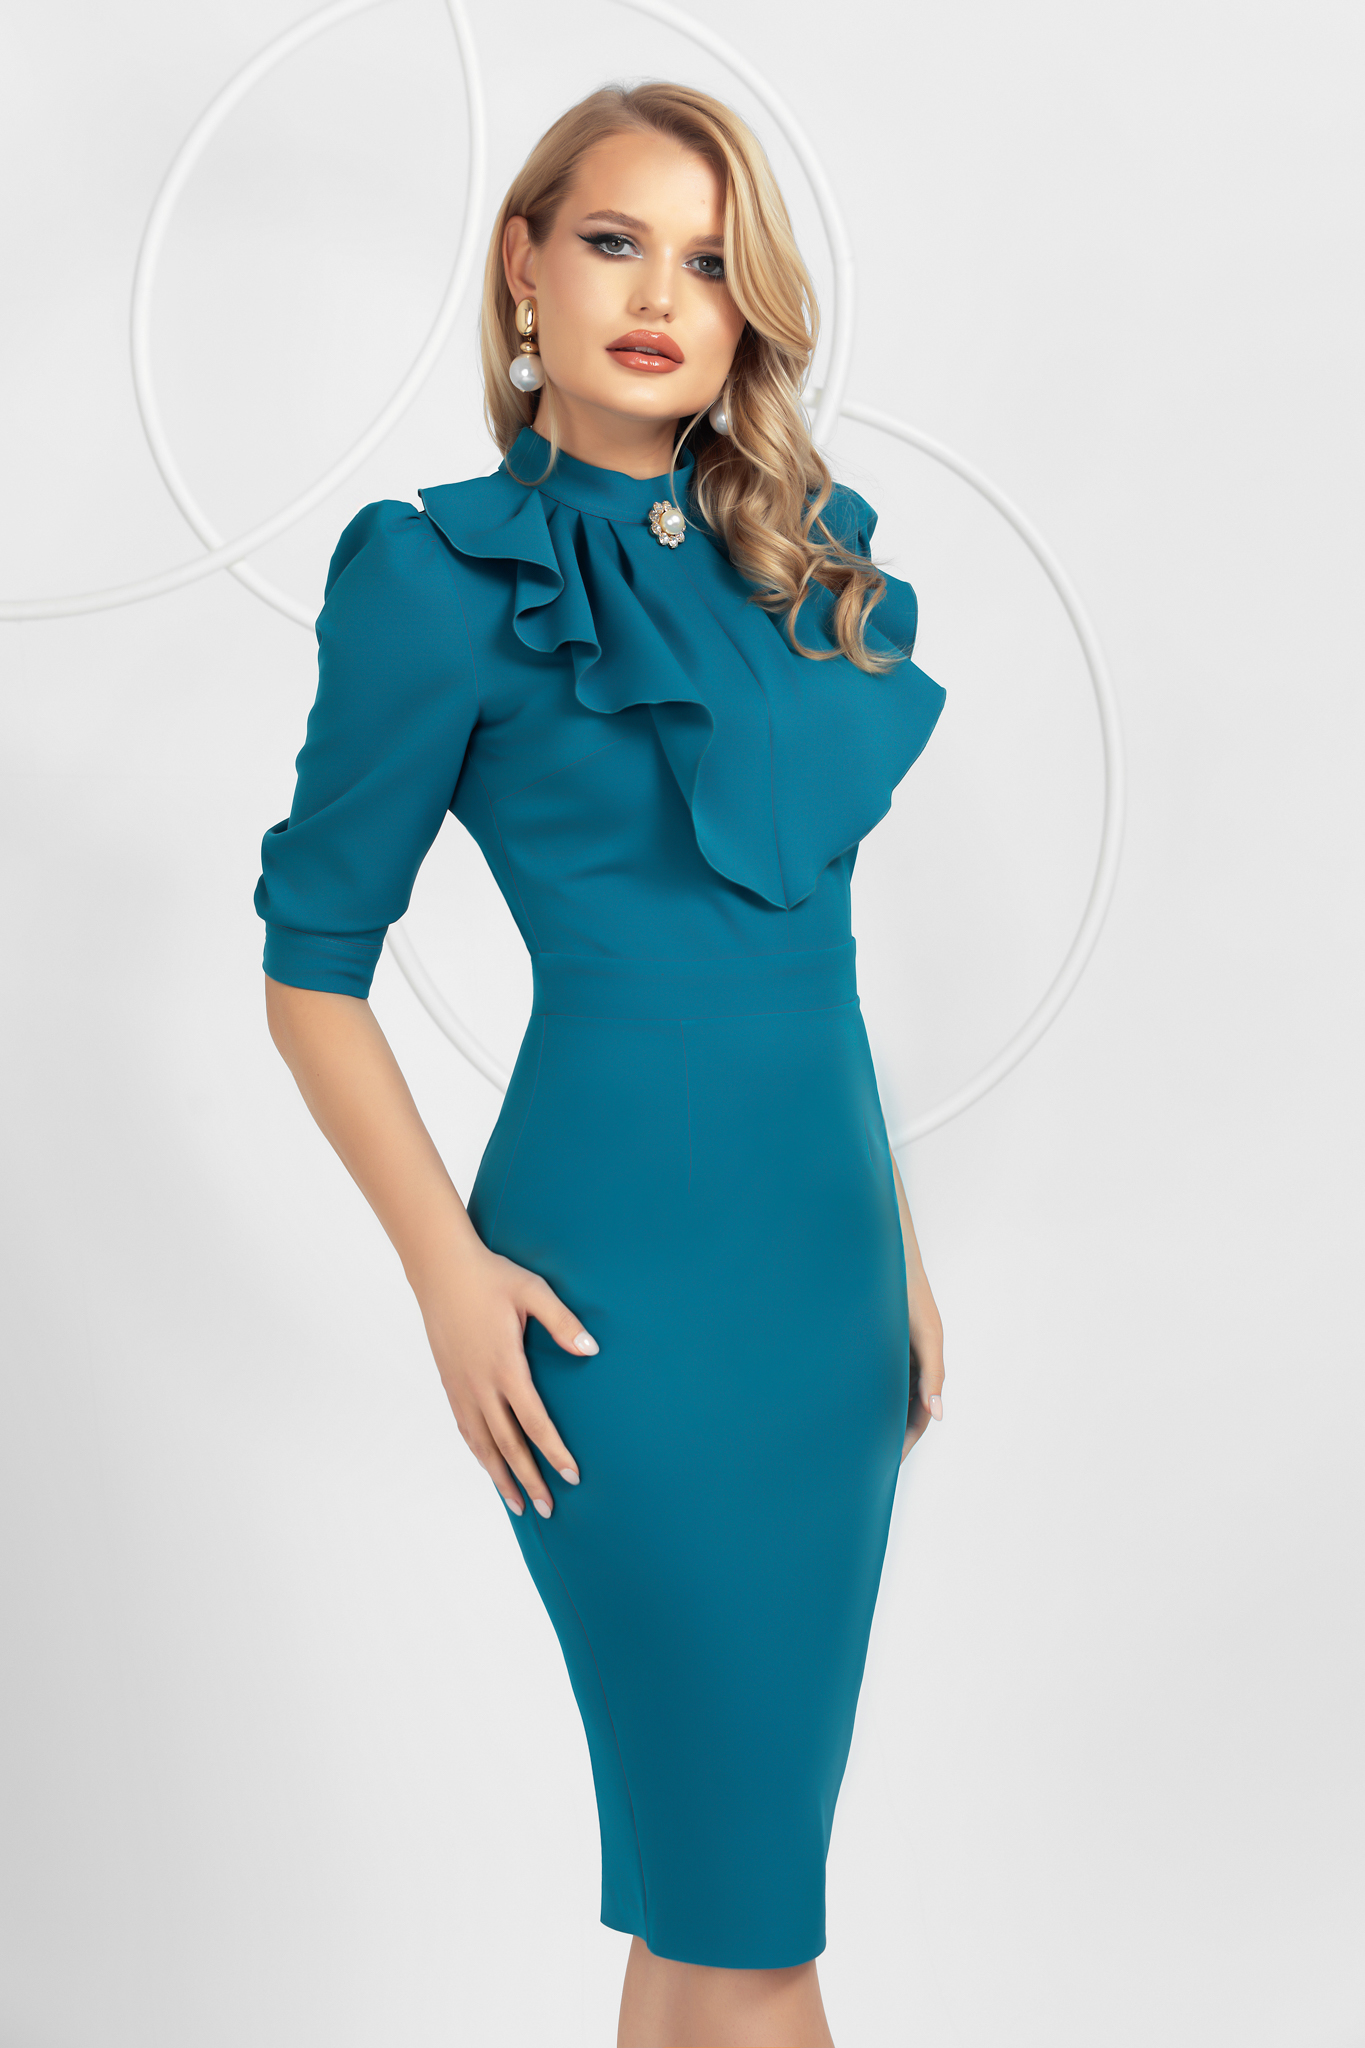 Turquoise slightly elastic fabric pencil dress with ruffle details accessorized with breastpin